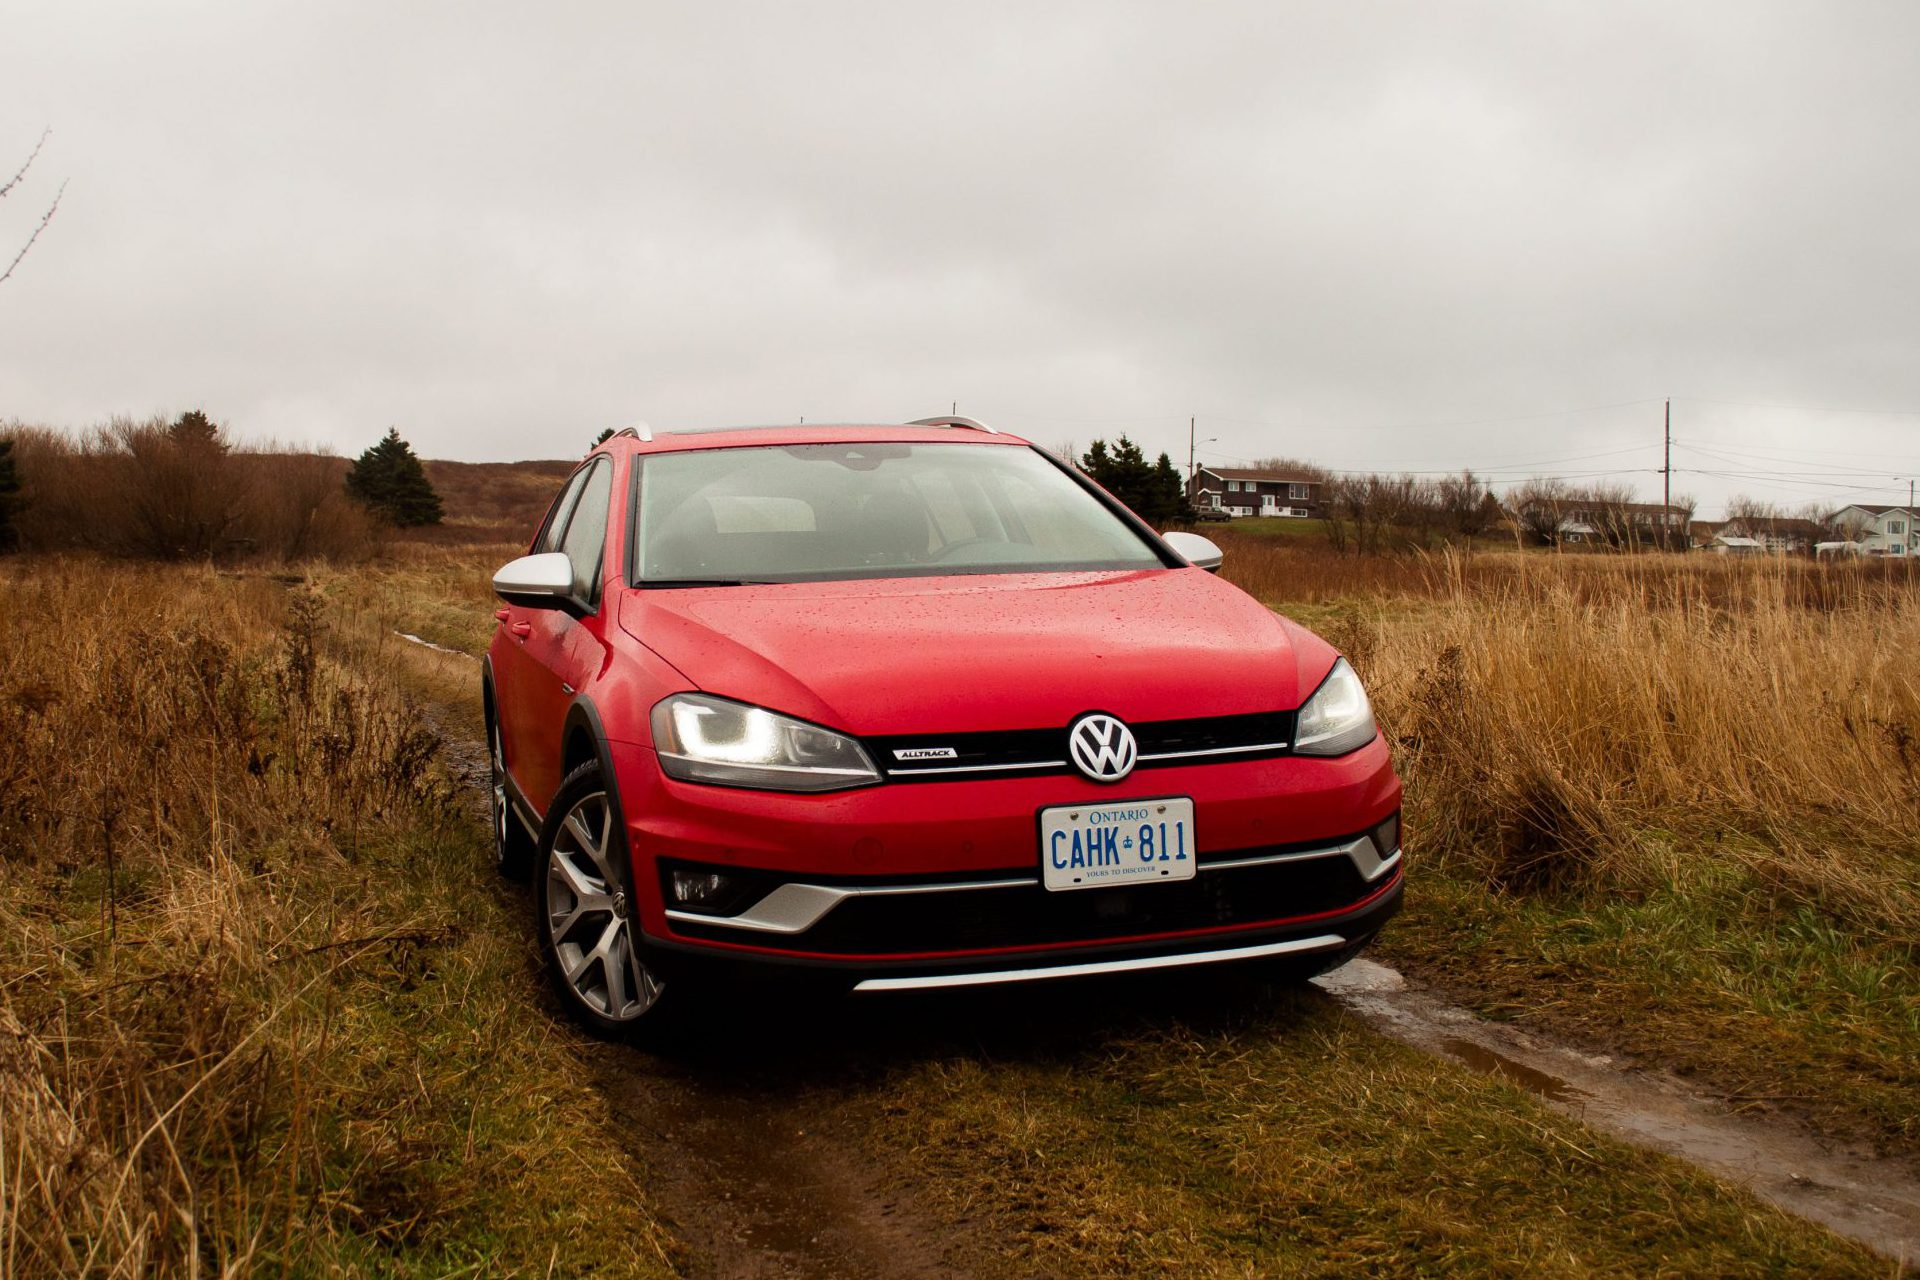 2017 volkswagen golf alltrack review alltrack is on track but can 39 t find the next track the. Black Bedroom Furniture Sets. Home Design Ideas